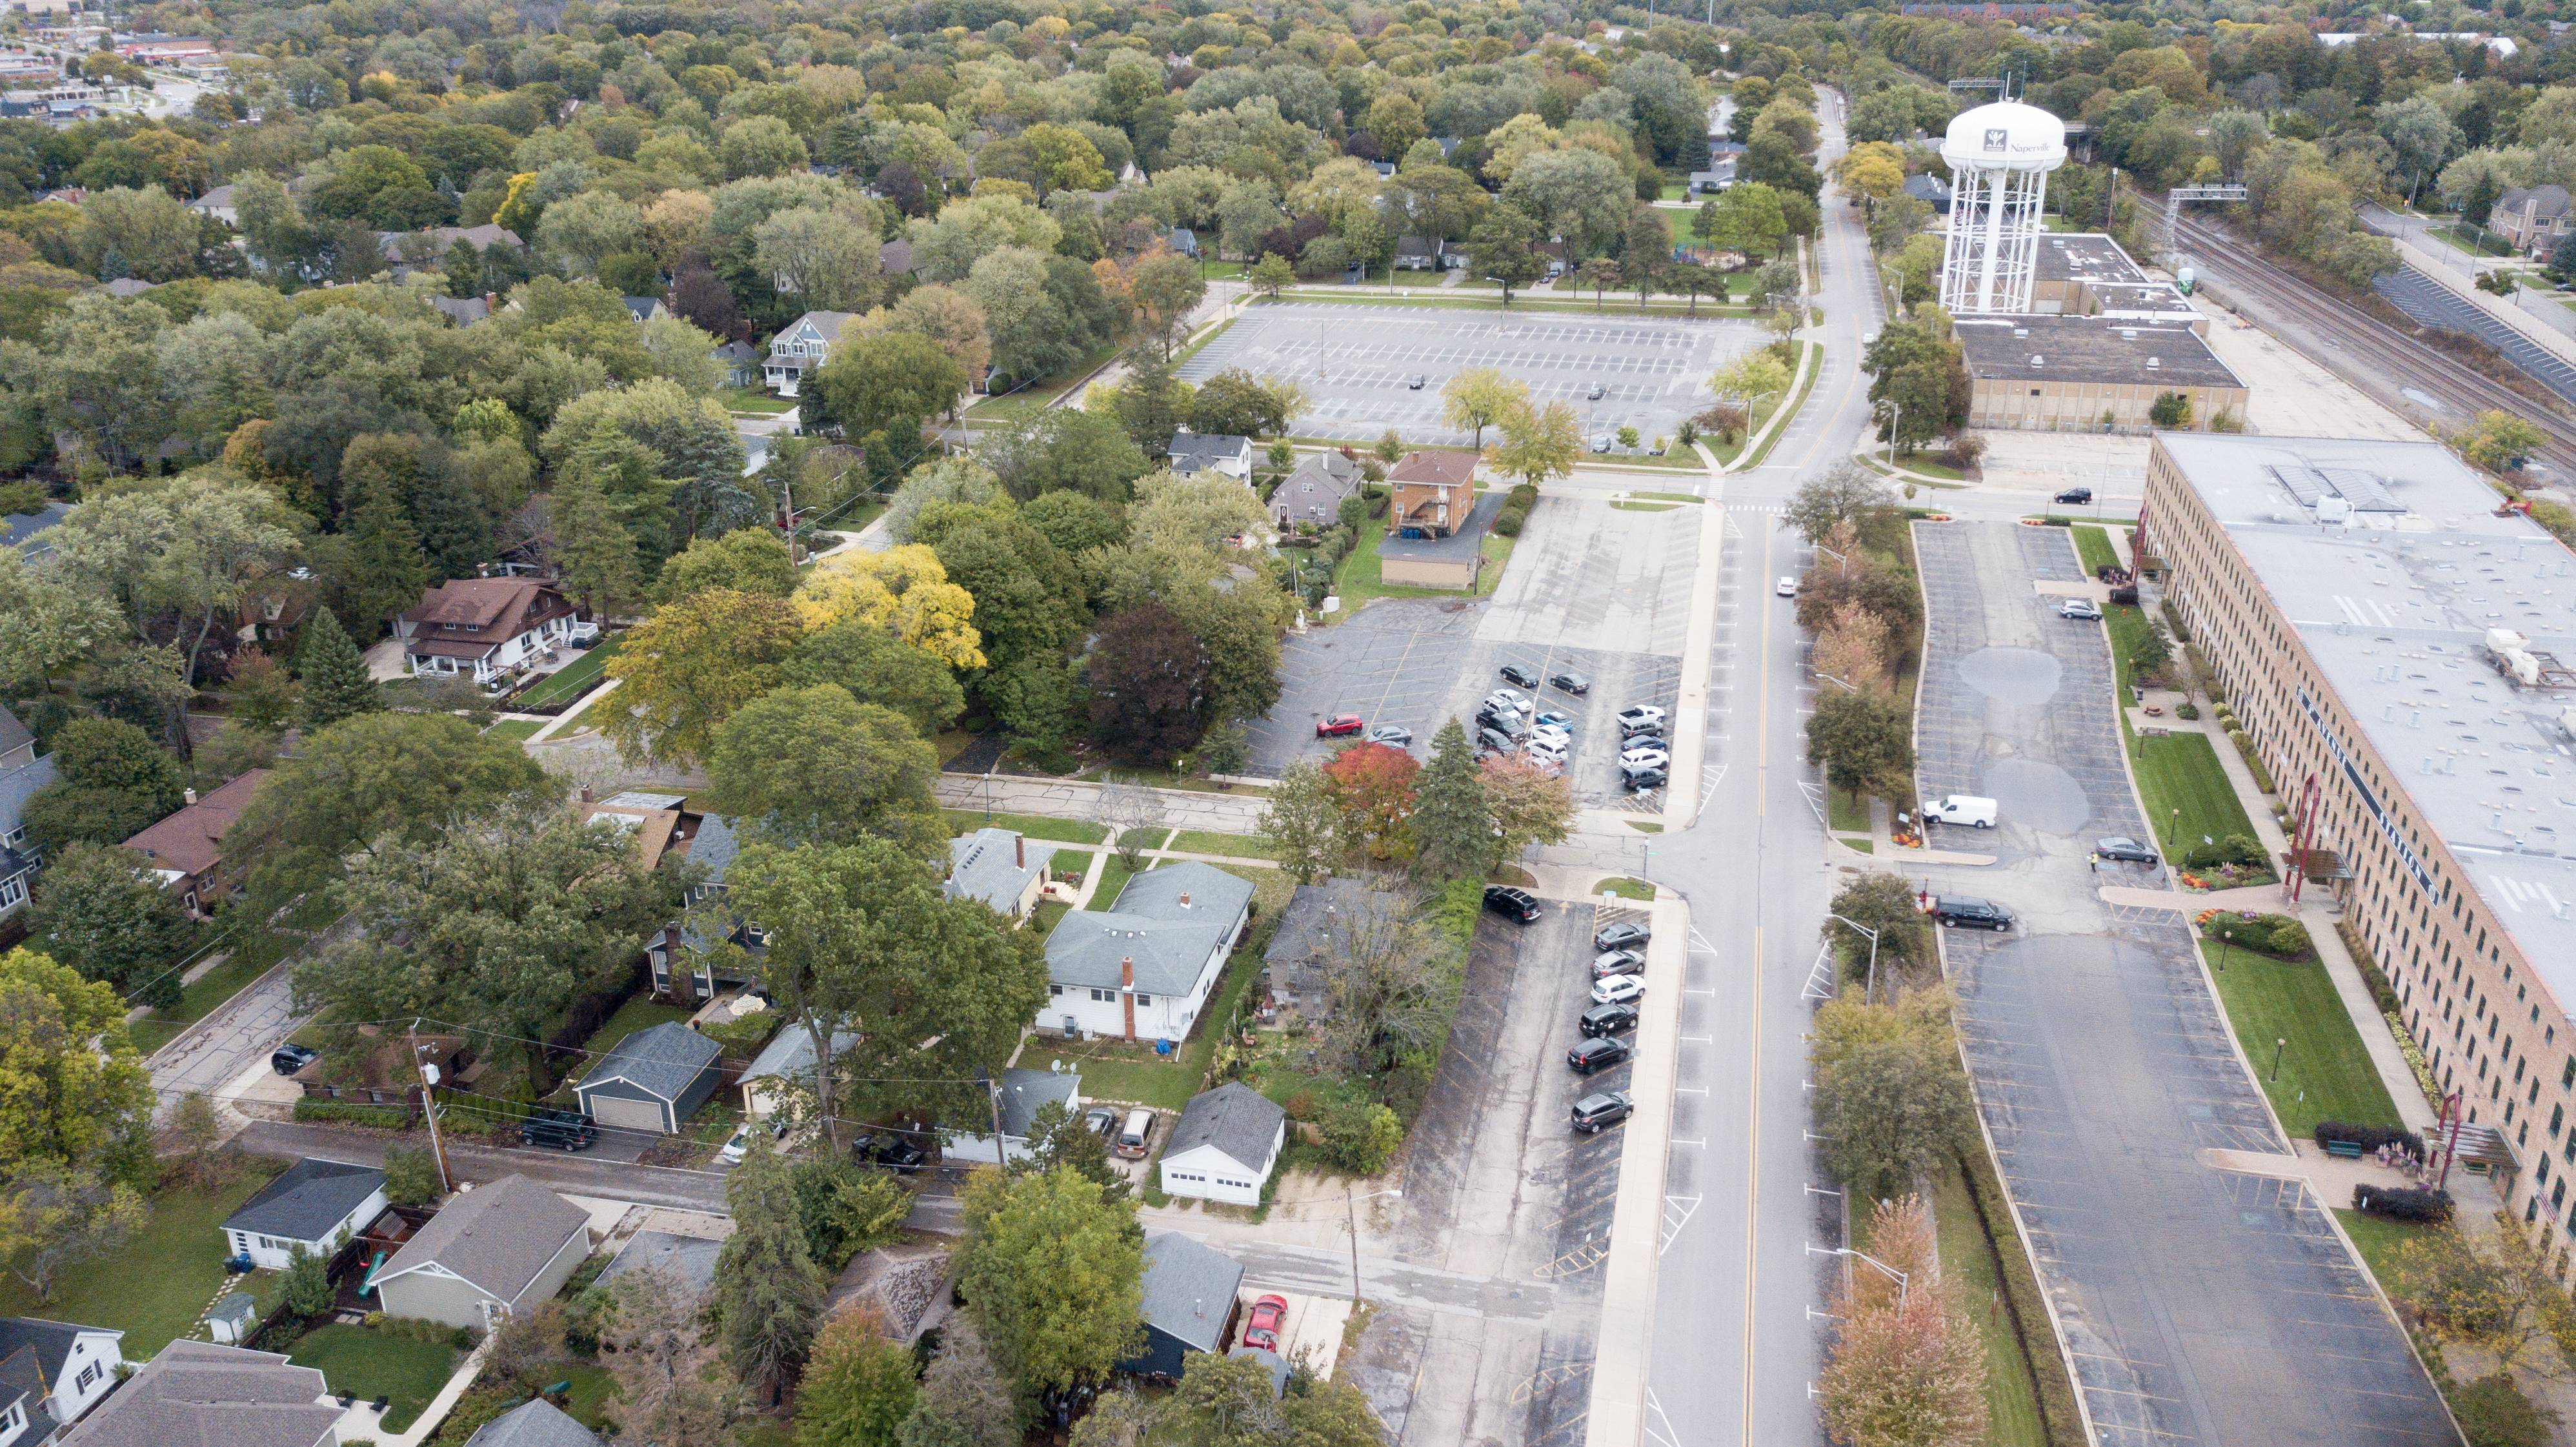 Top 5th Avenue concerns in Naperville: Land use, traffic